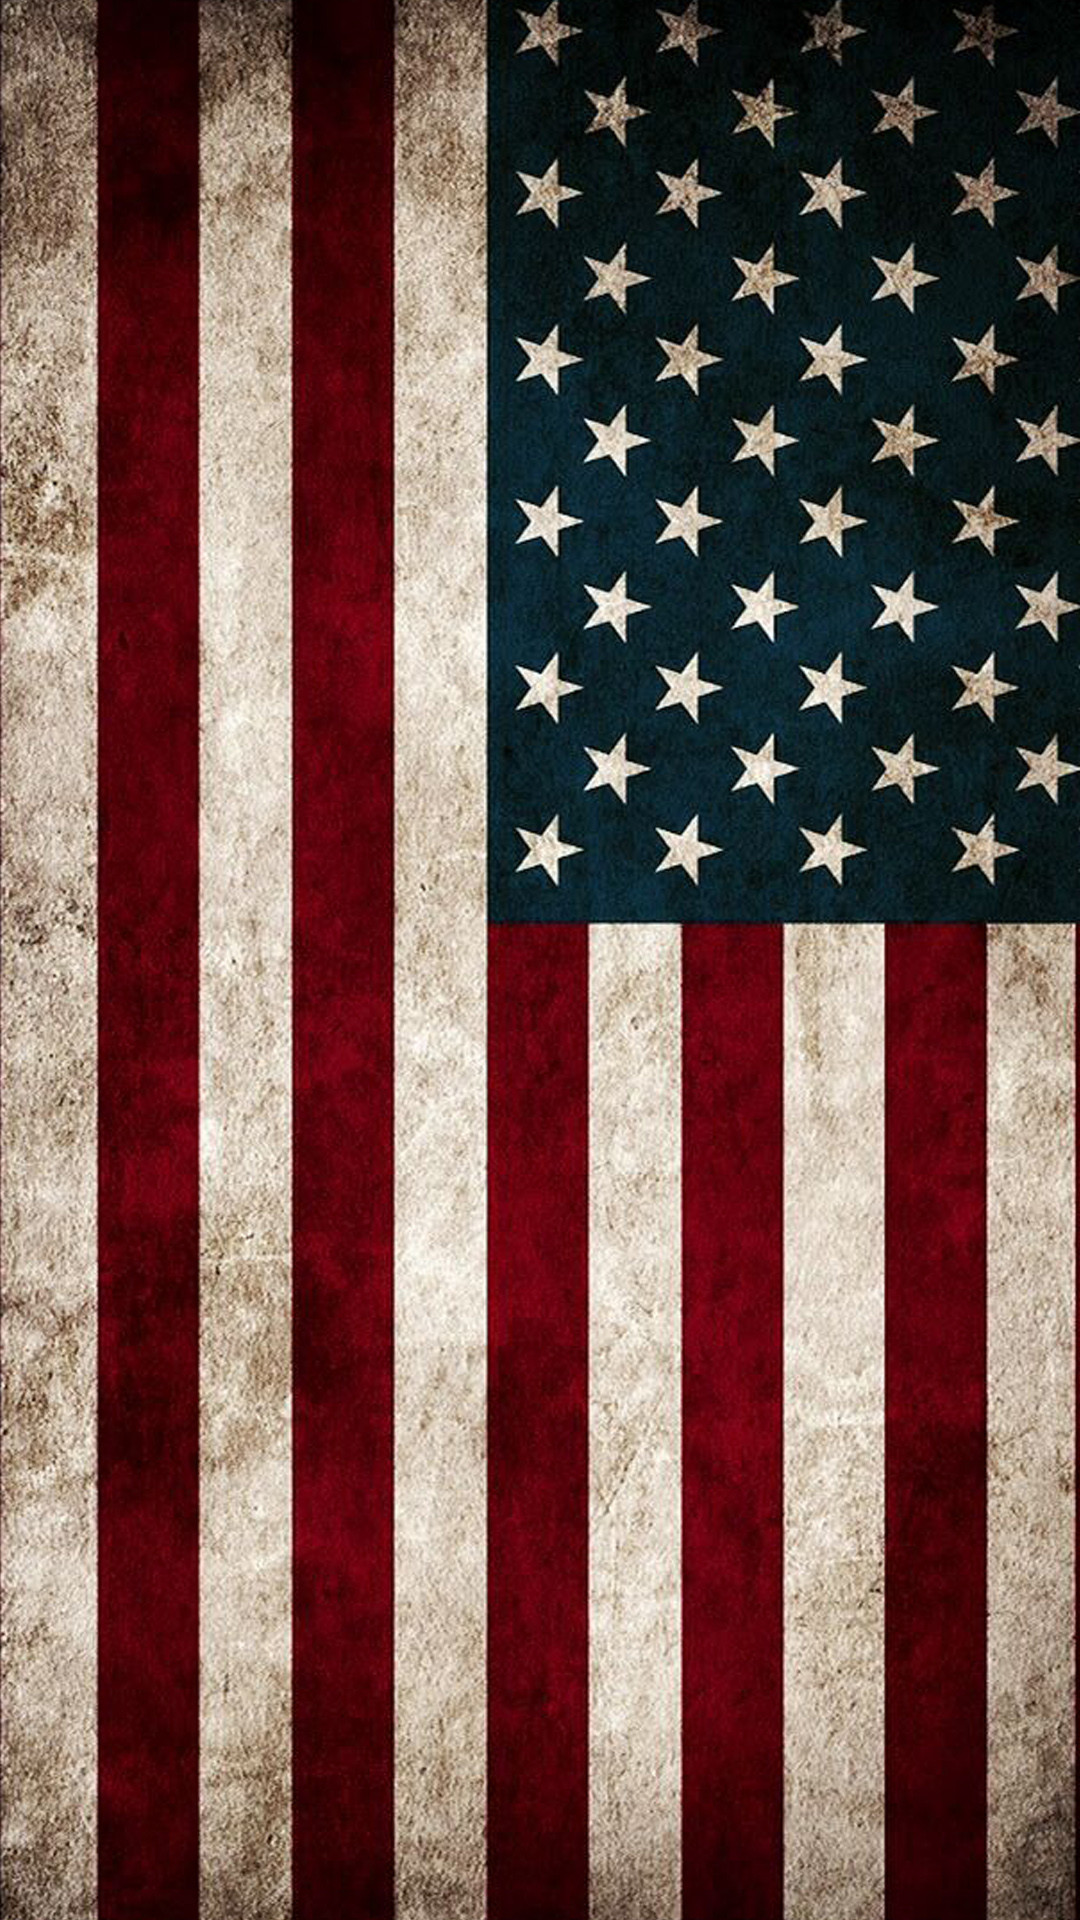 American Flag iphone wallpaper size